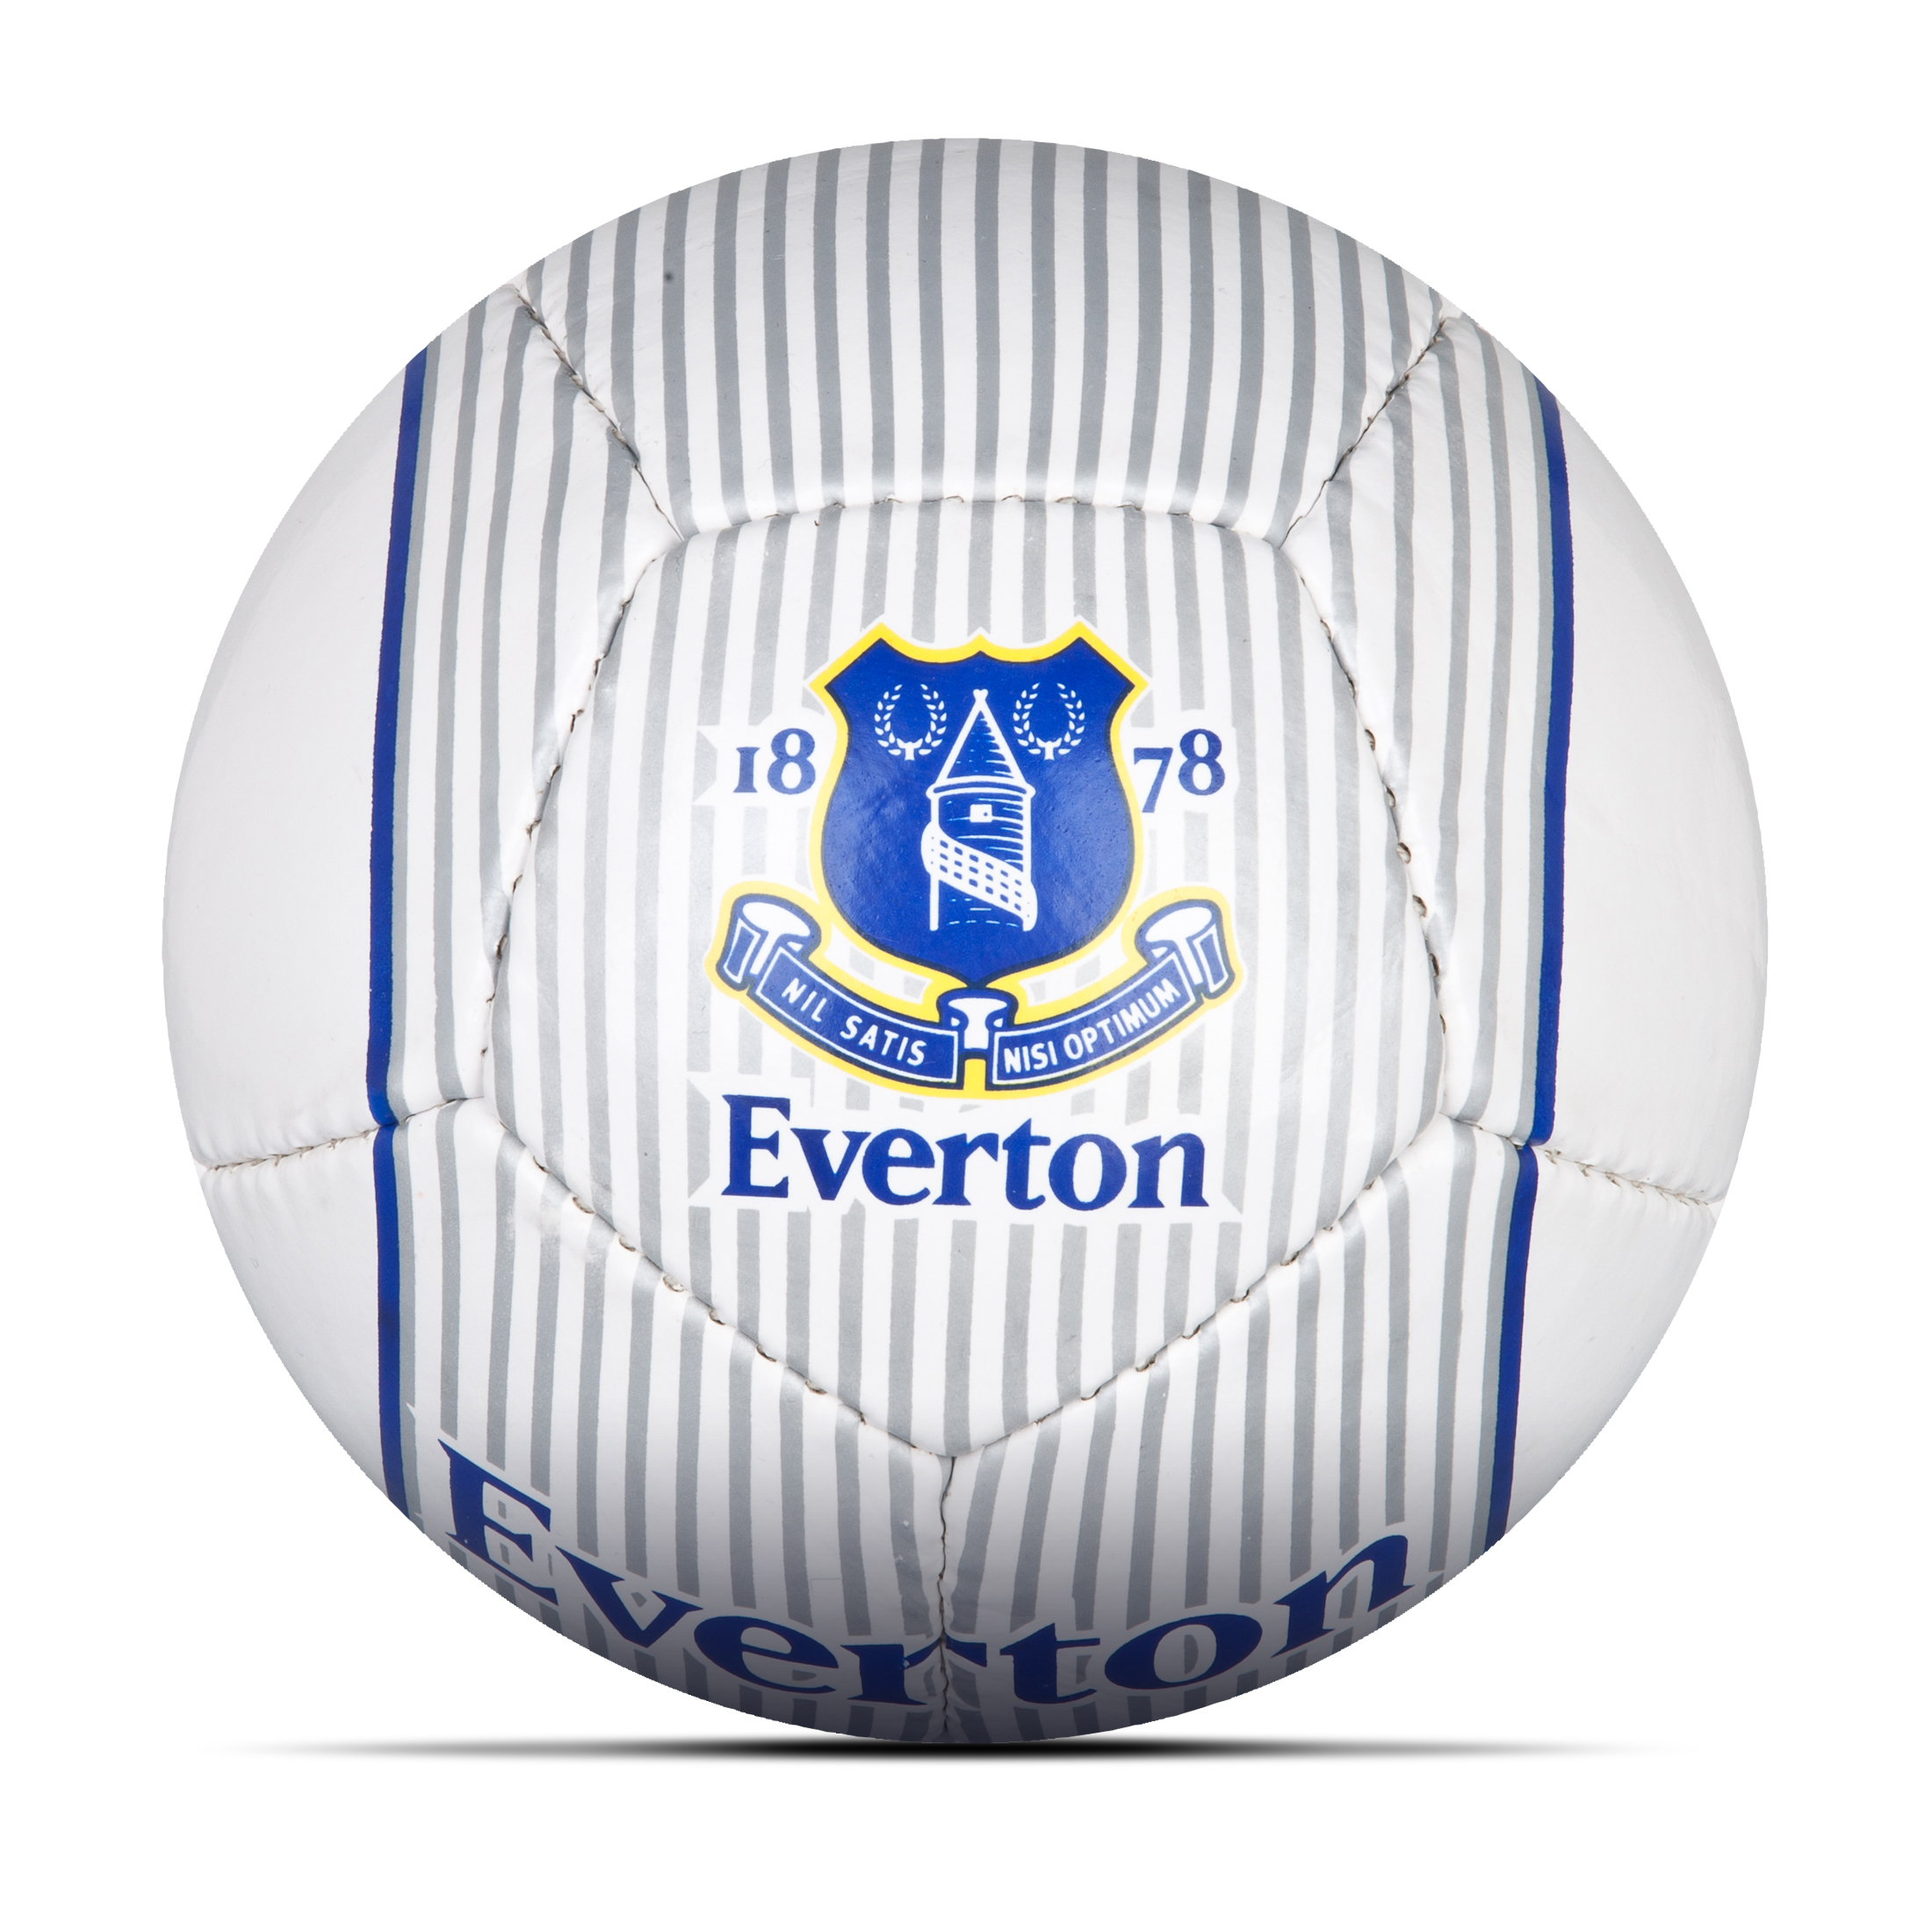 Everton Core Football Size 2 - White/Silver